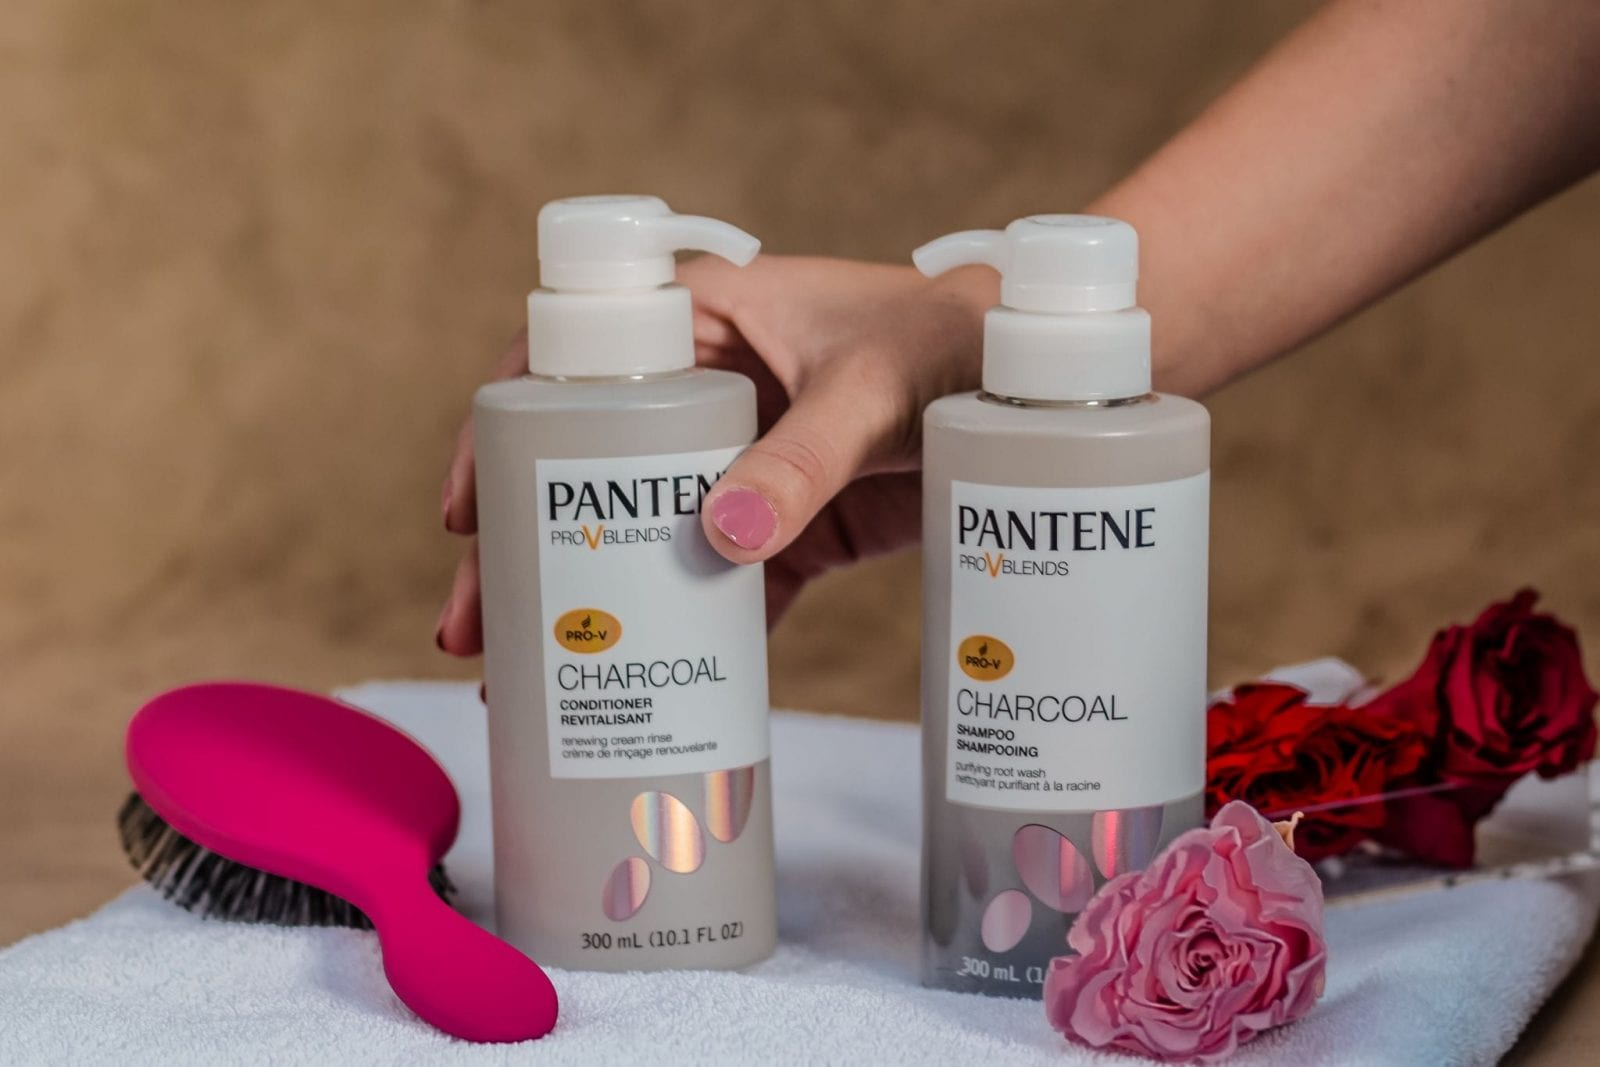 This is a close up of me grabbing for the Pantene Charcoal Shampoo, which is place on a gorgeous towel with roses.